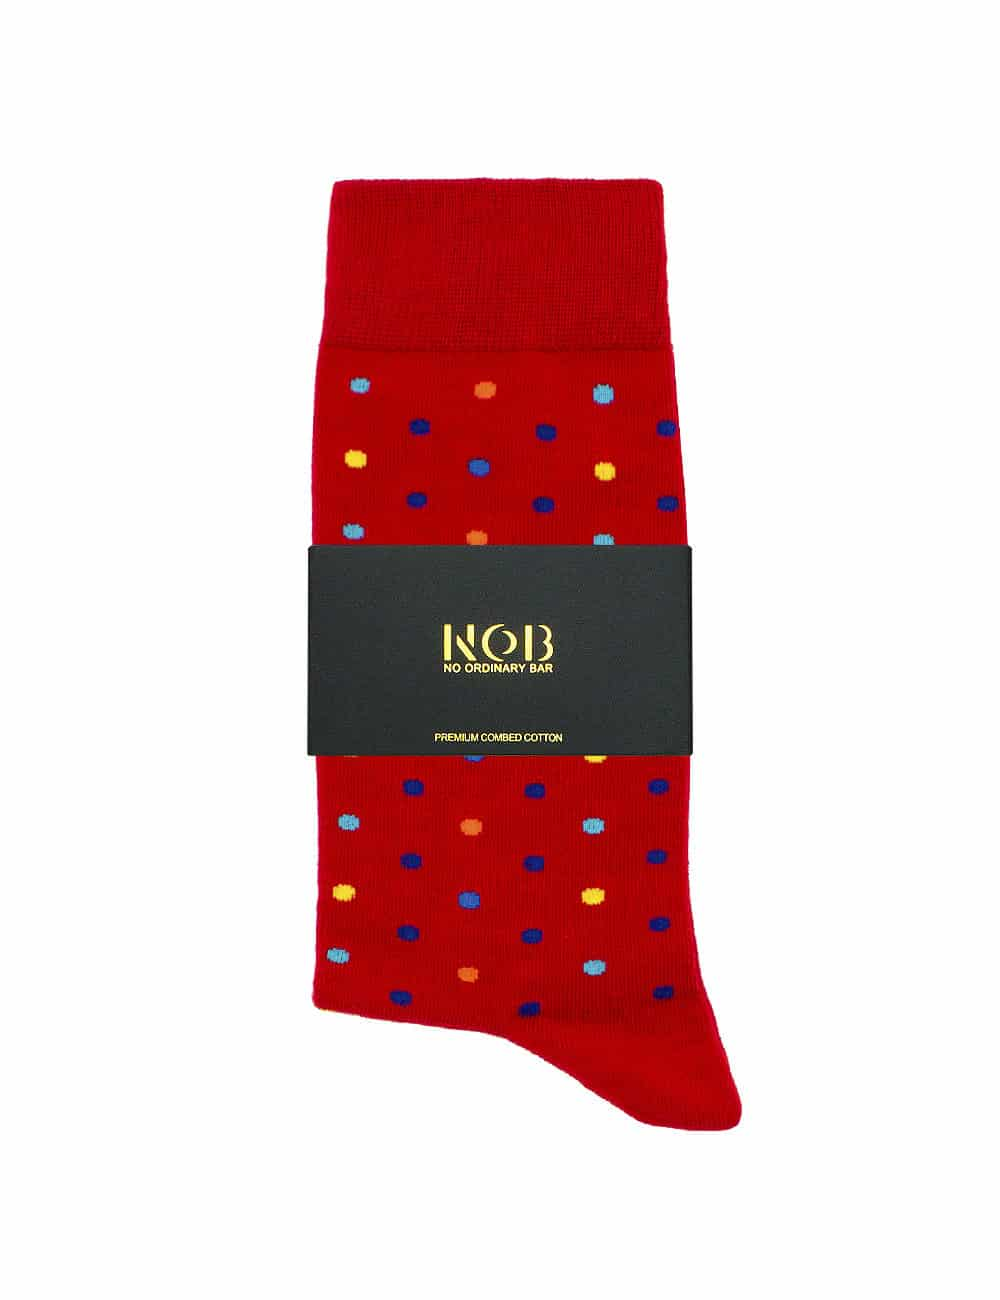 Red with Colourful Polka Dots Crew Socks made with Premium Combed Cotton SOC5A.NOB1